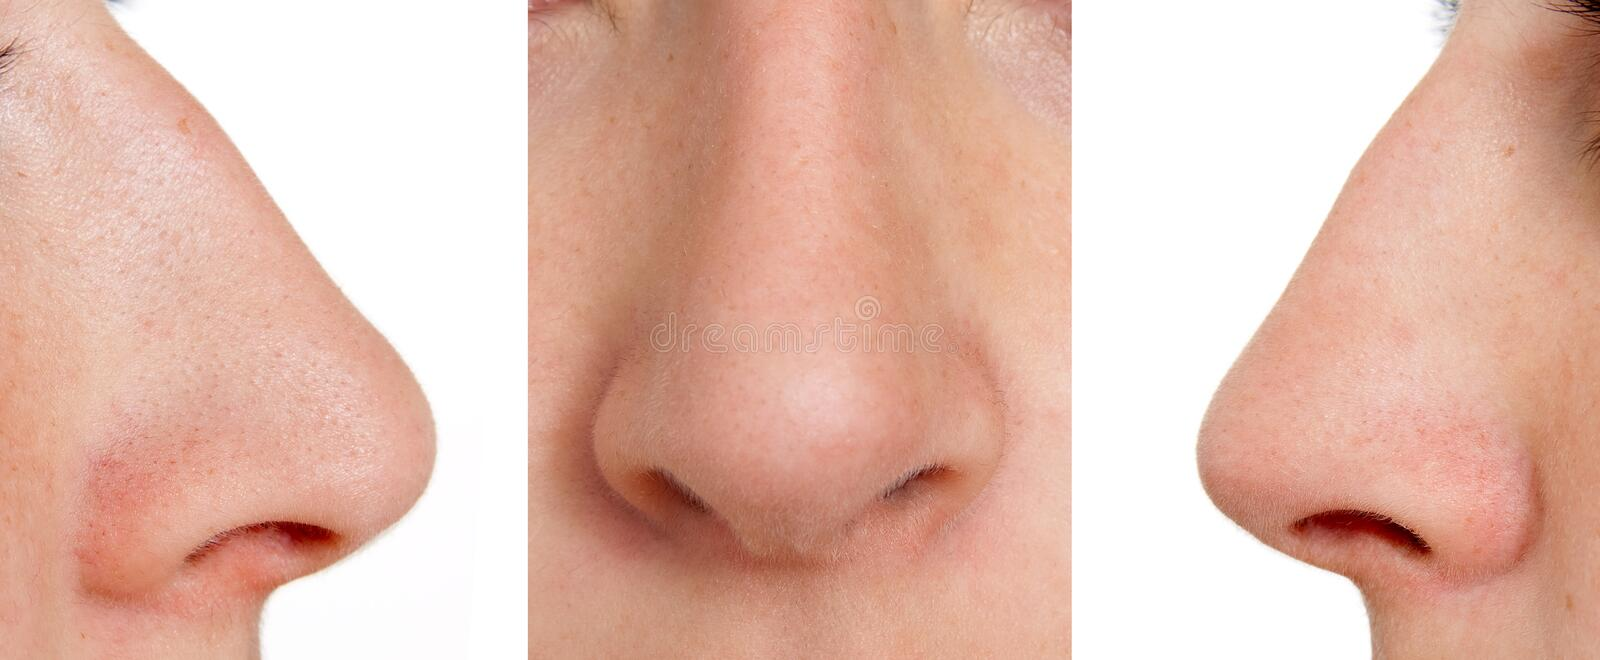 Aquiline nose stock images